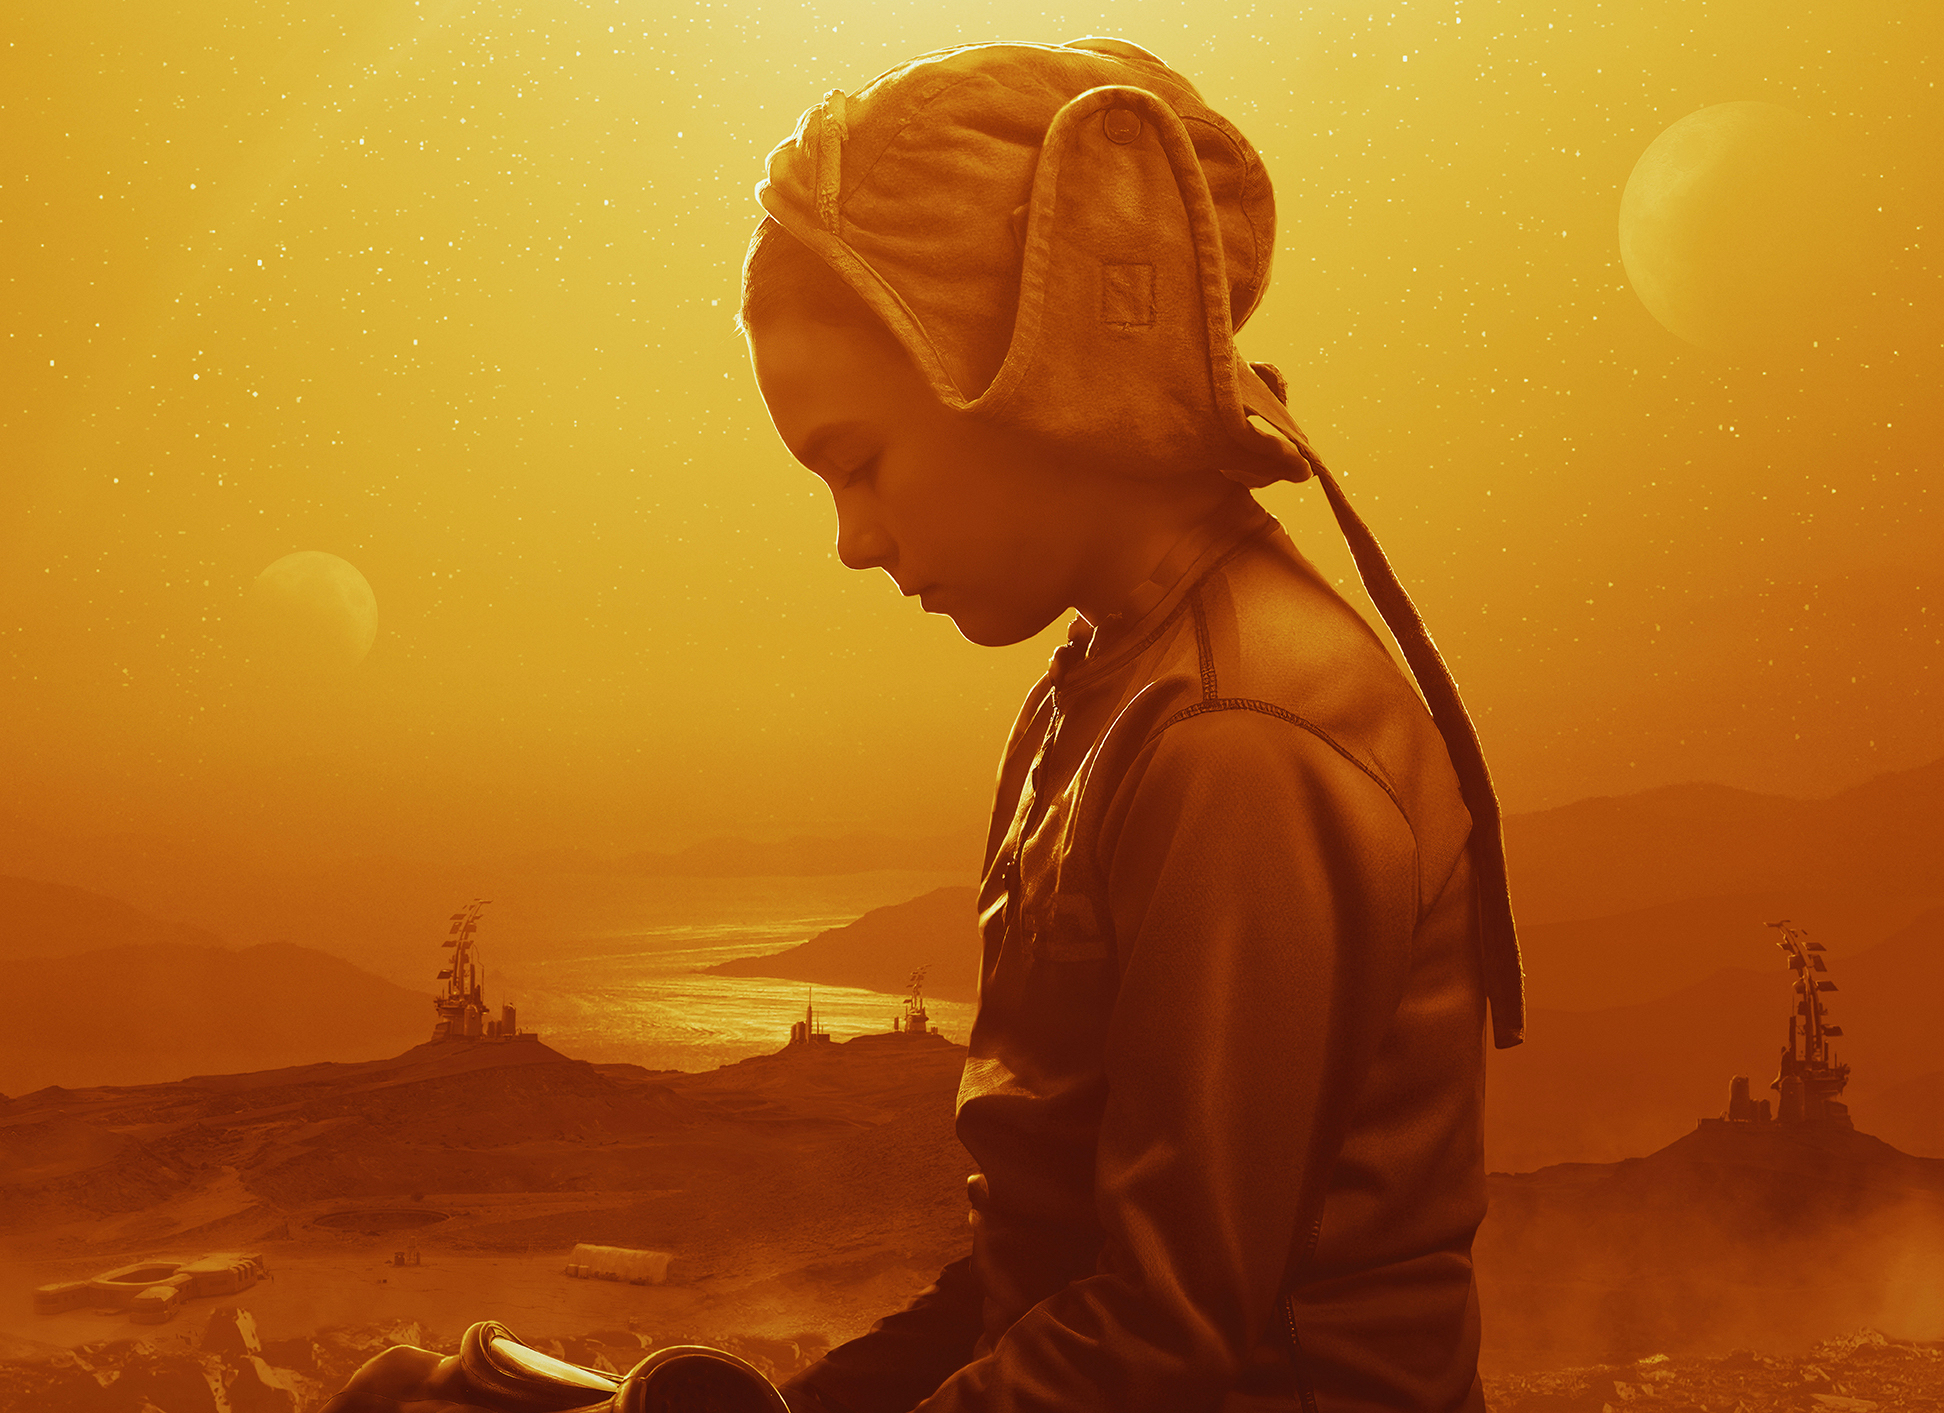 A young girl (Brooklynn Prince) in a bonnet sits in a bright yellow desert in the poster image for Settlers